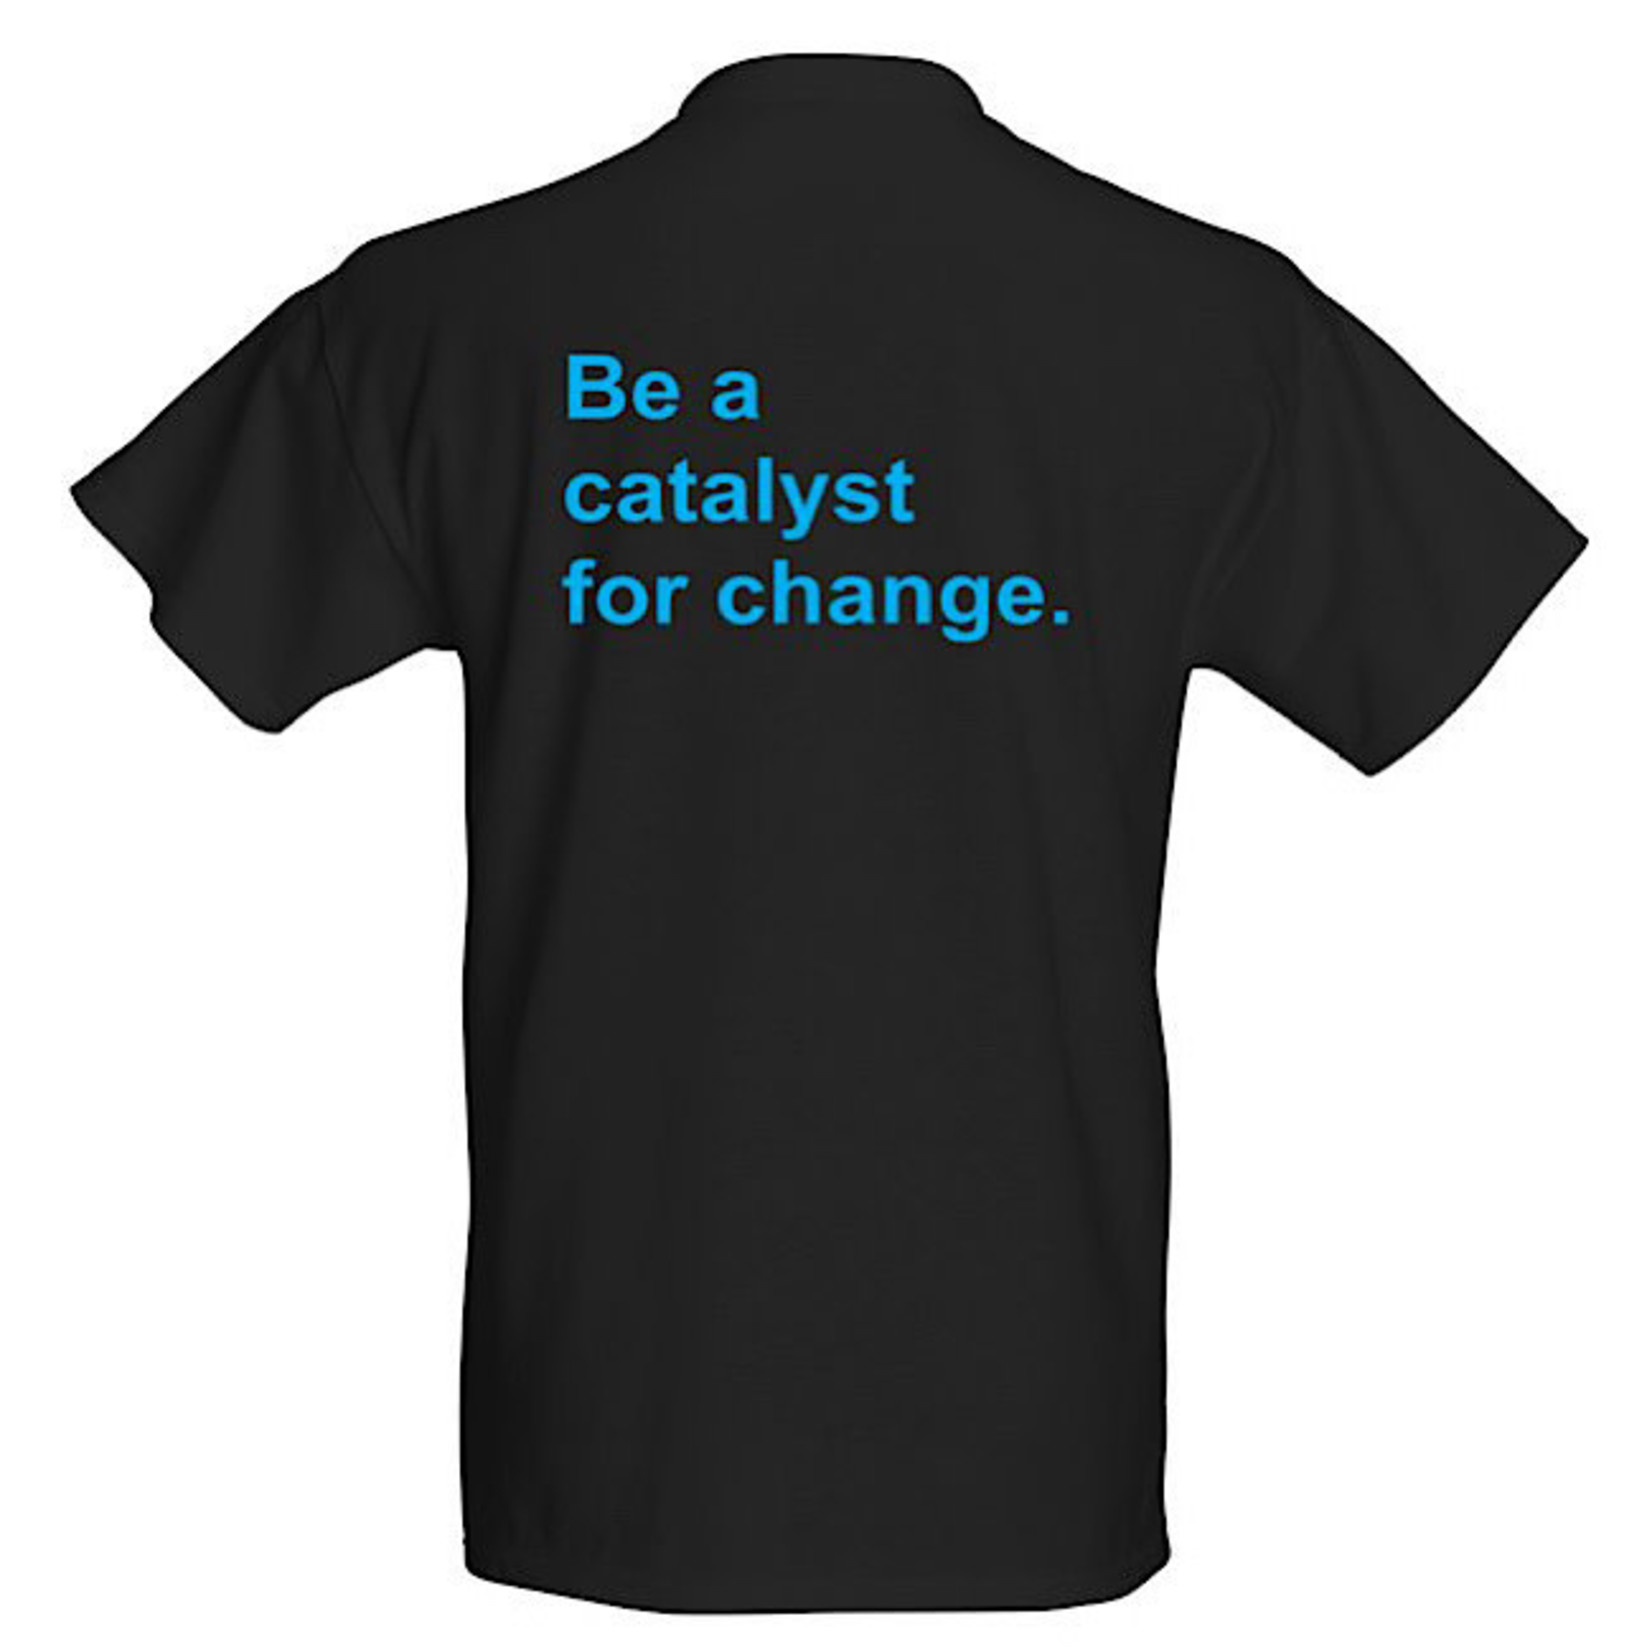 Bad Annie's T-Shirt - Be A Catalyst For Change - Shirley Chisholm